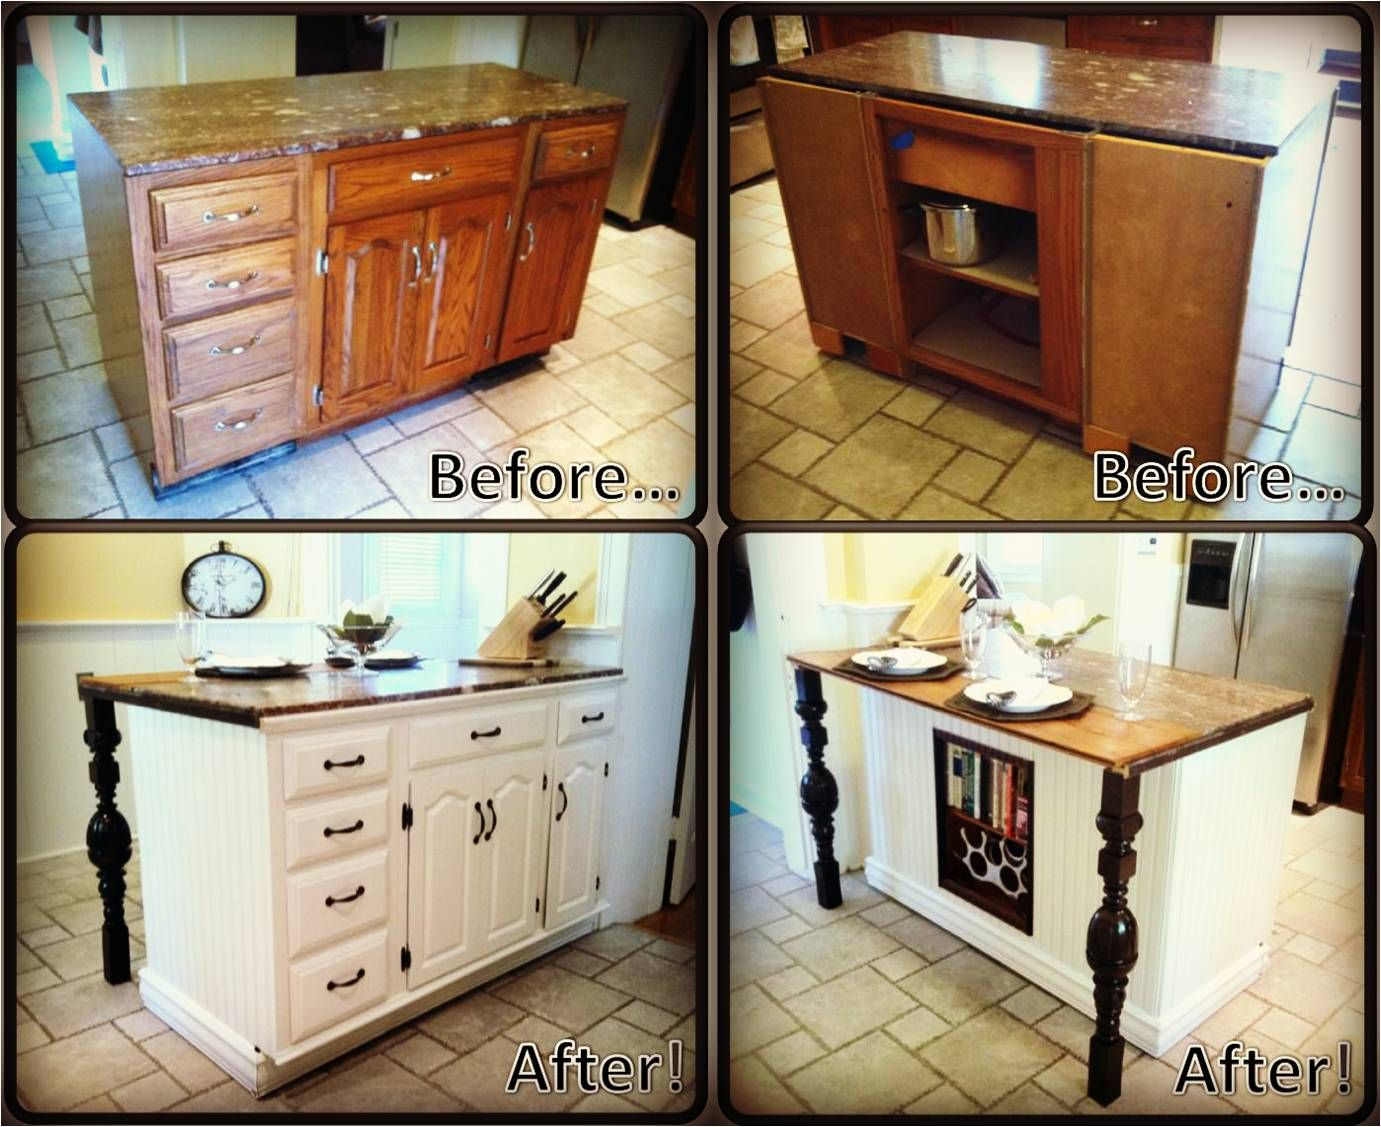 Kitchen Island Diy diy kitchen island renovation | old bathrooms, wood trim and vanities